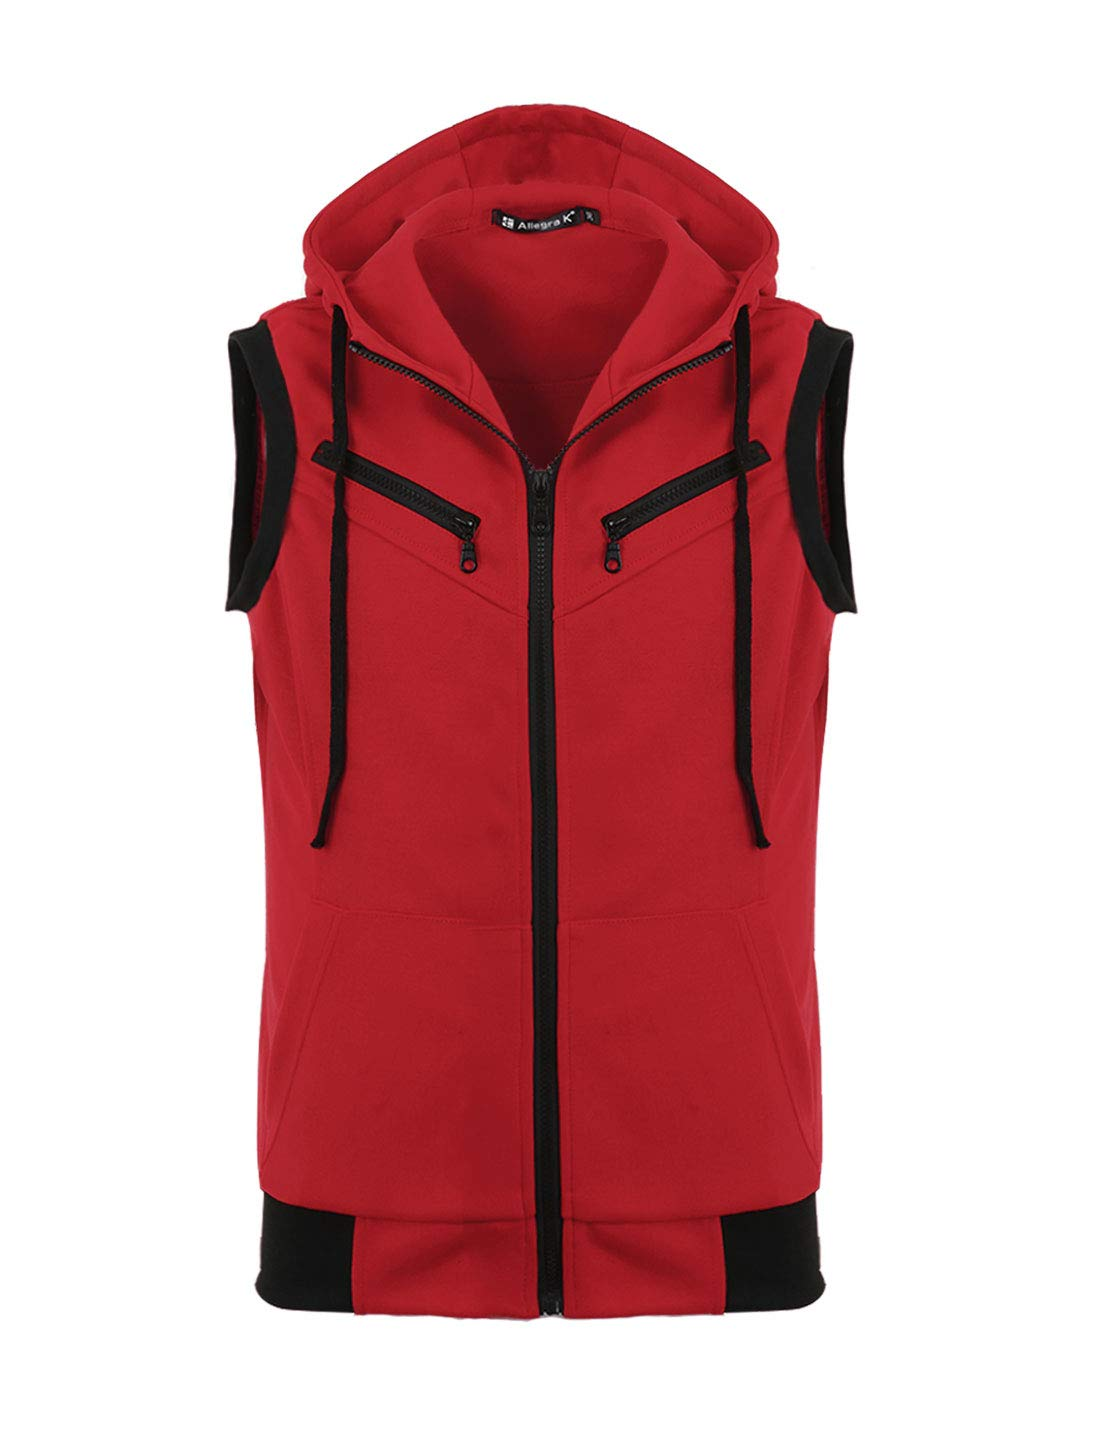 uxcell Men Kangaroo Pocket Zip Up Drawstring Hooded Sleeveless Vest Red XXL 50 by uxcell